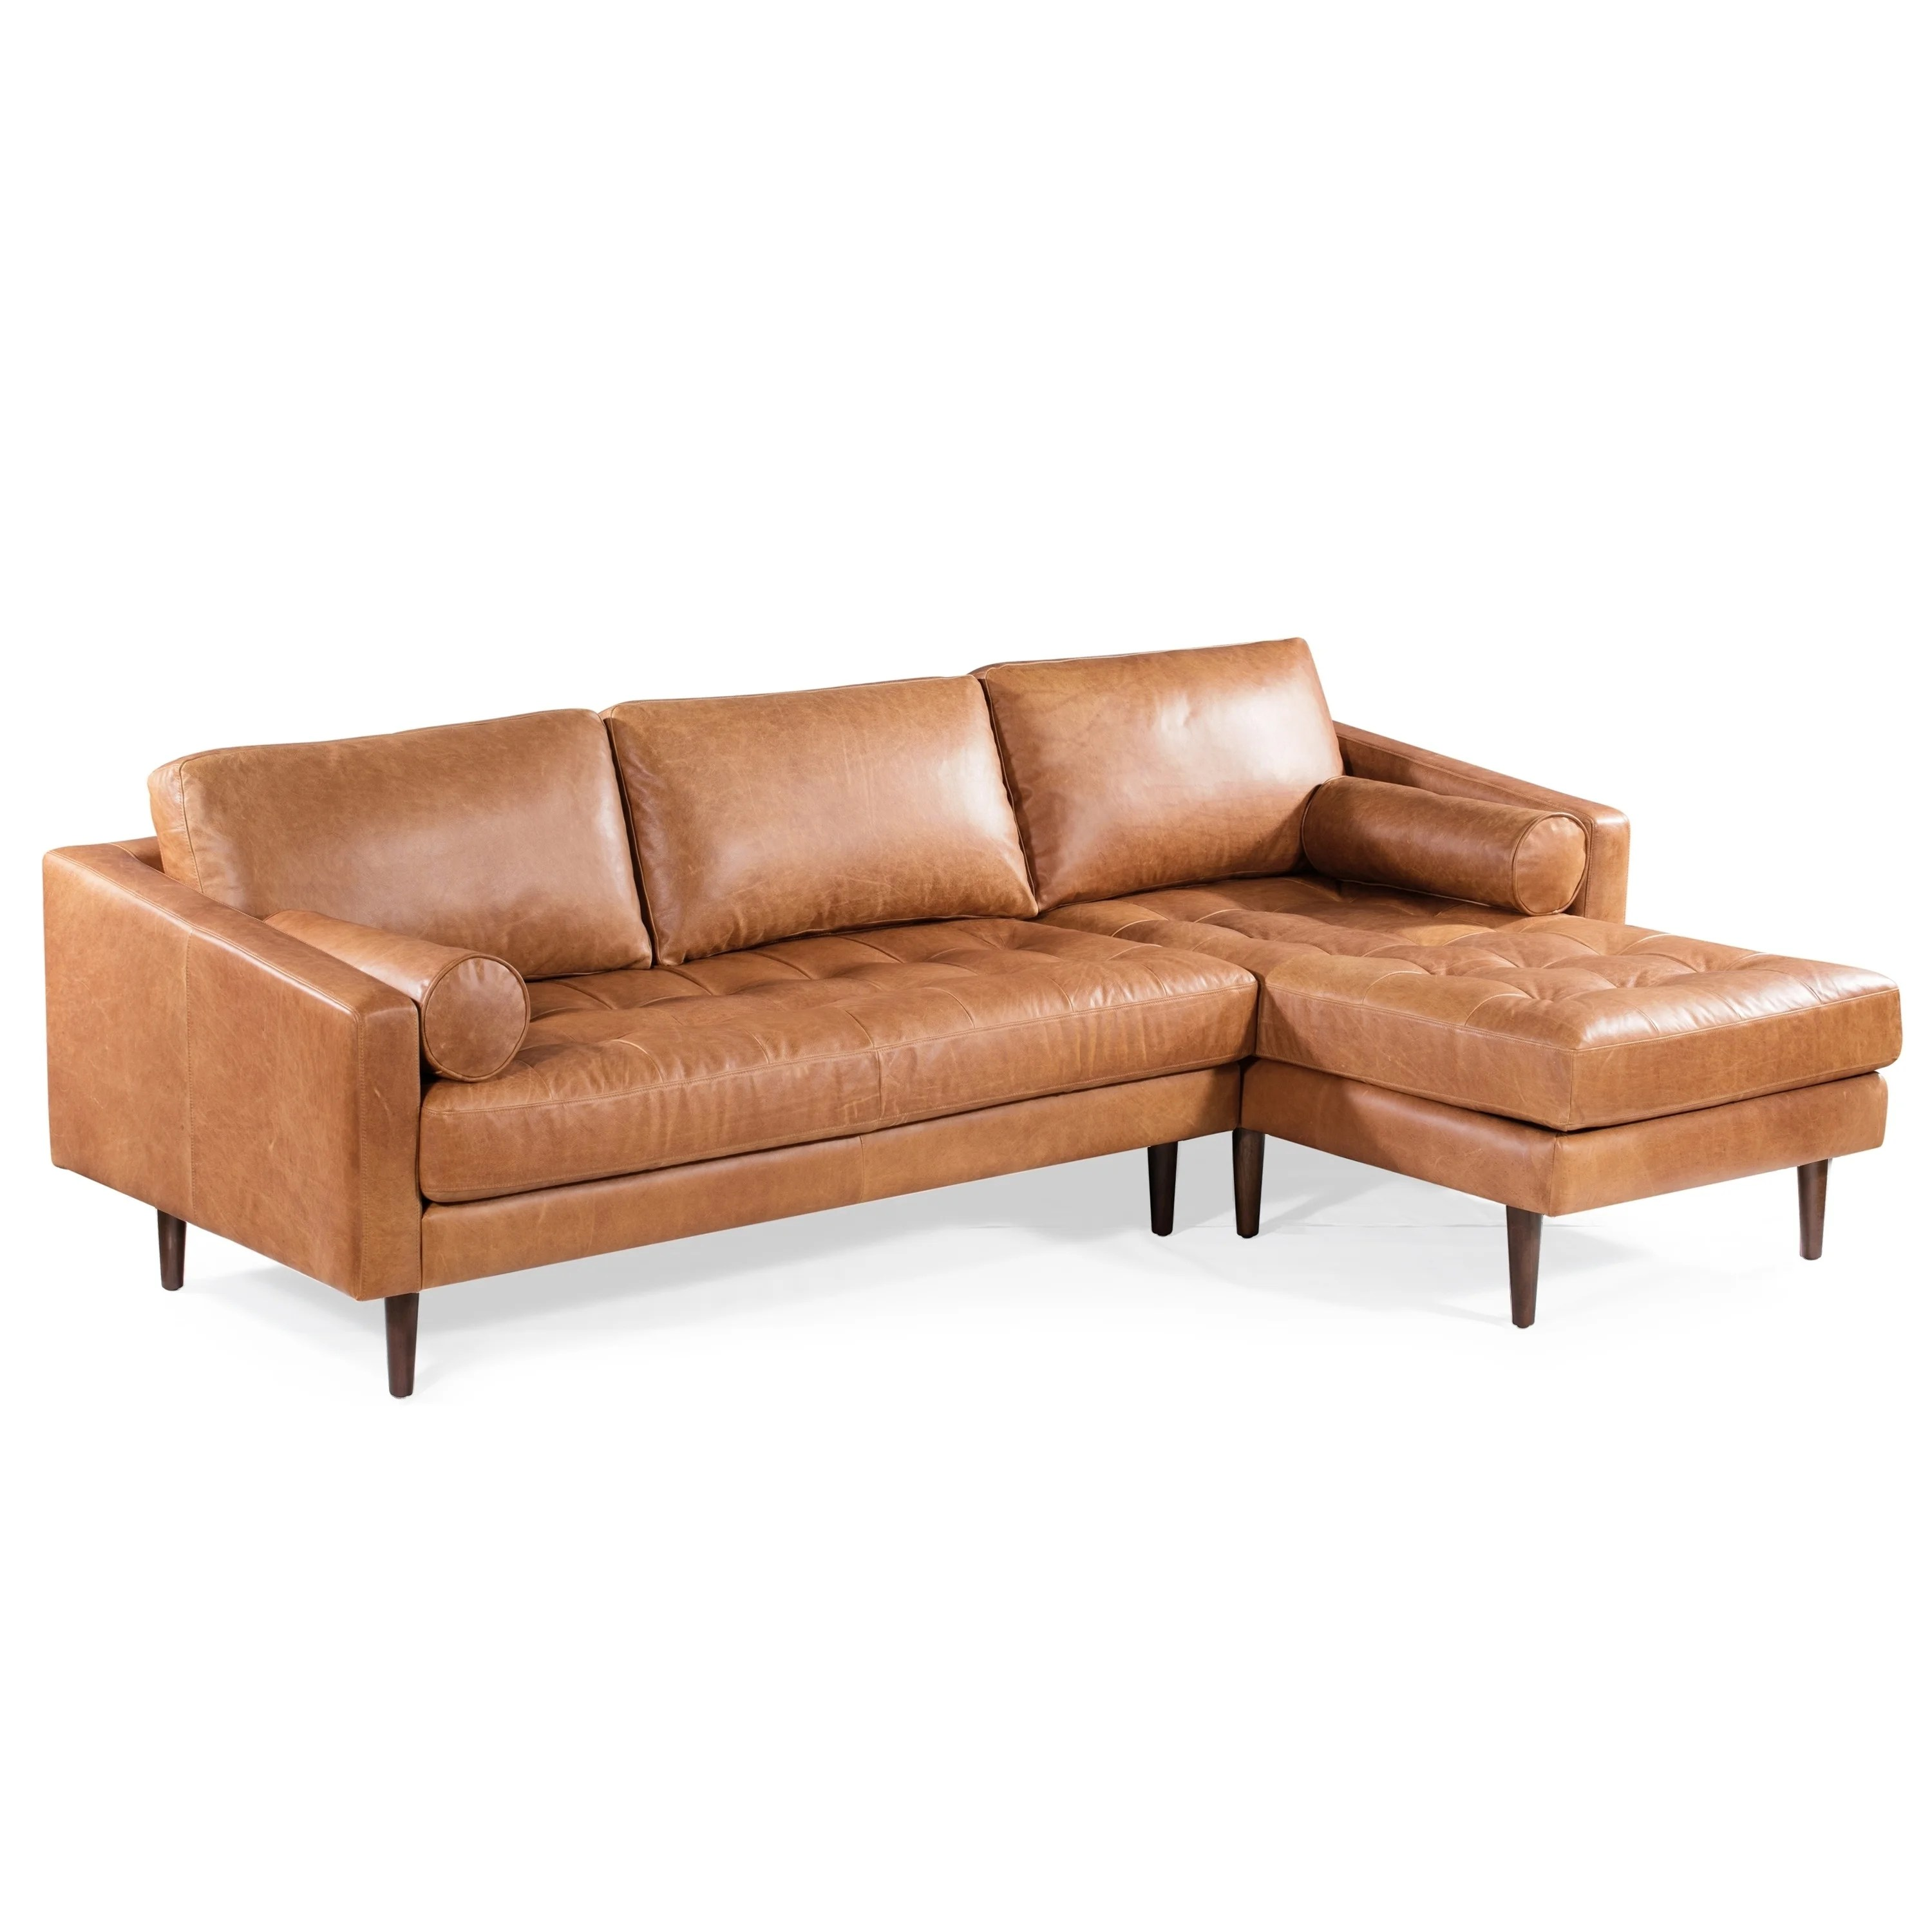 Settee No Arms Buy Square Arms Sectional Sofa Online At Overstock Our Best